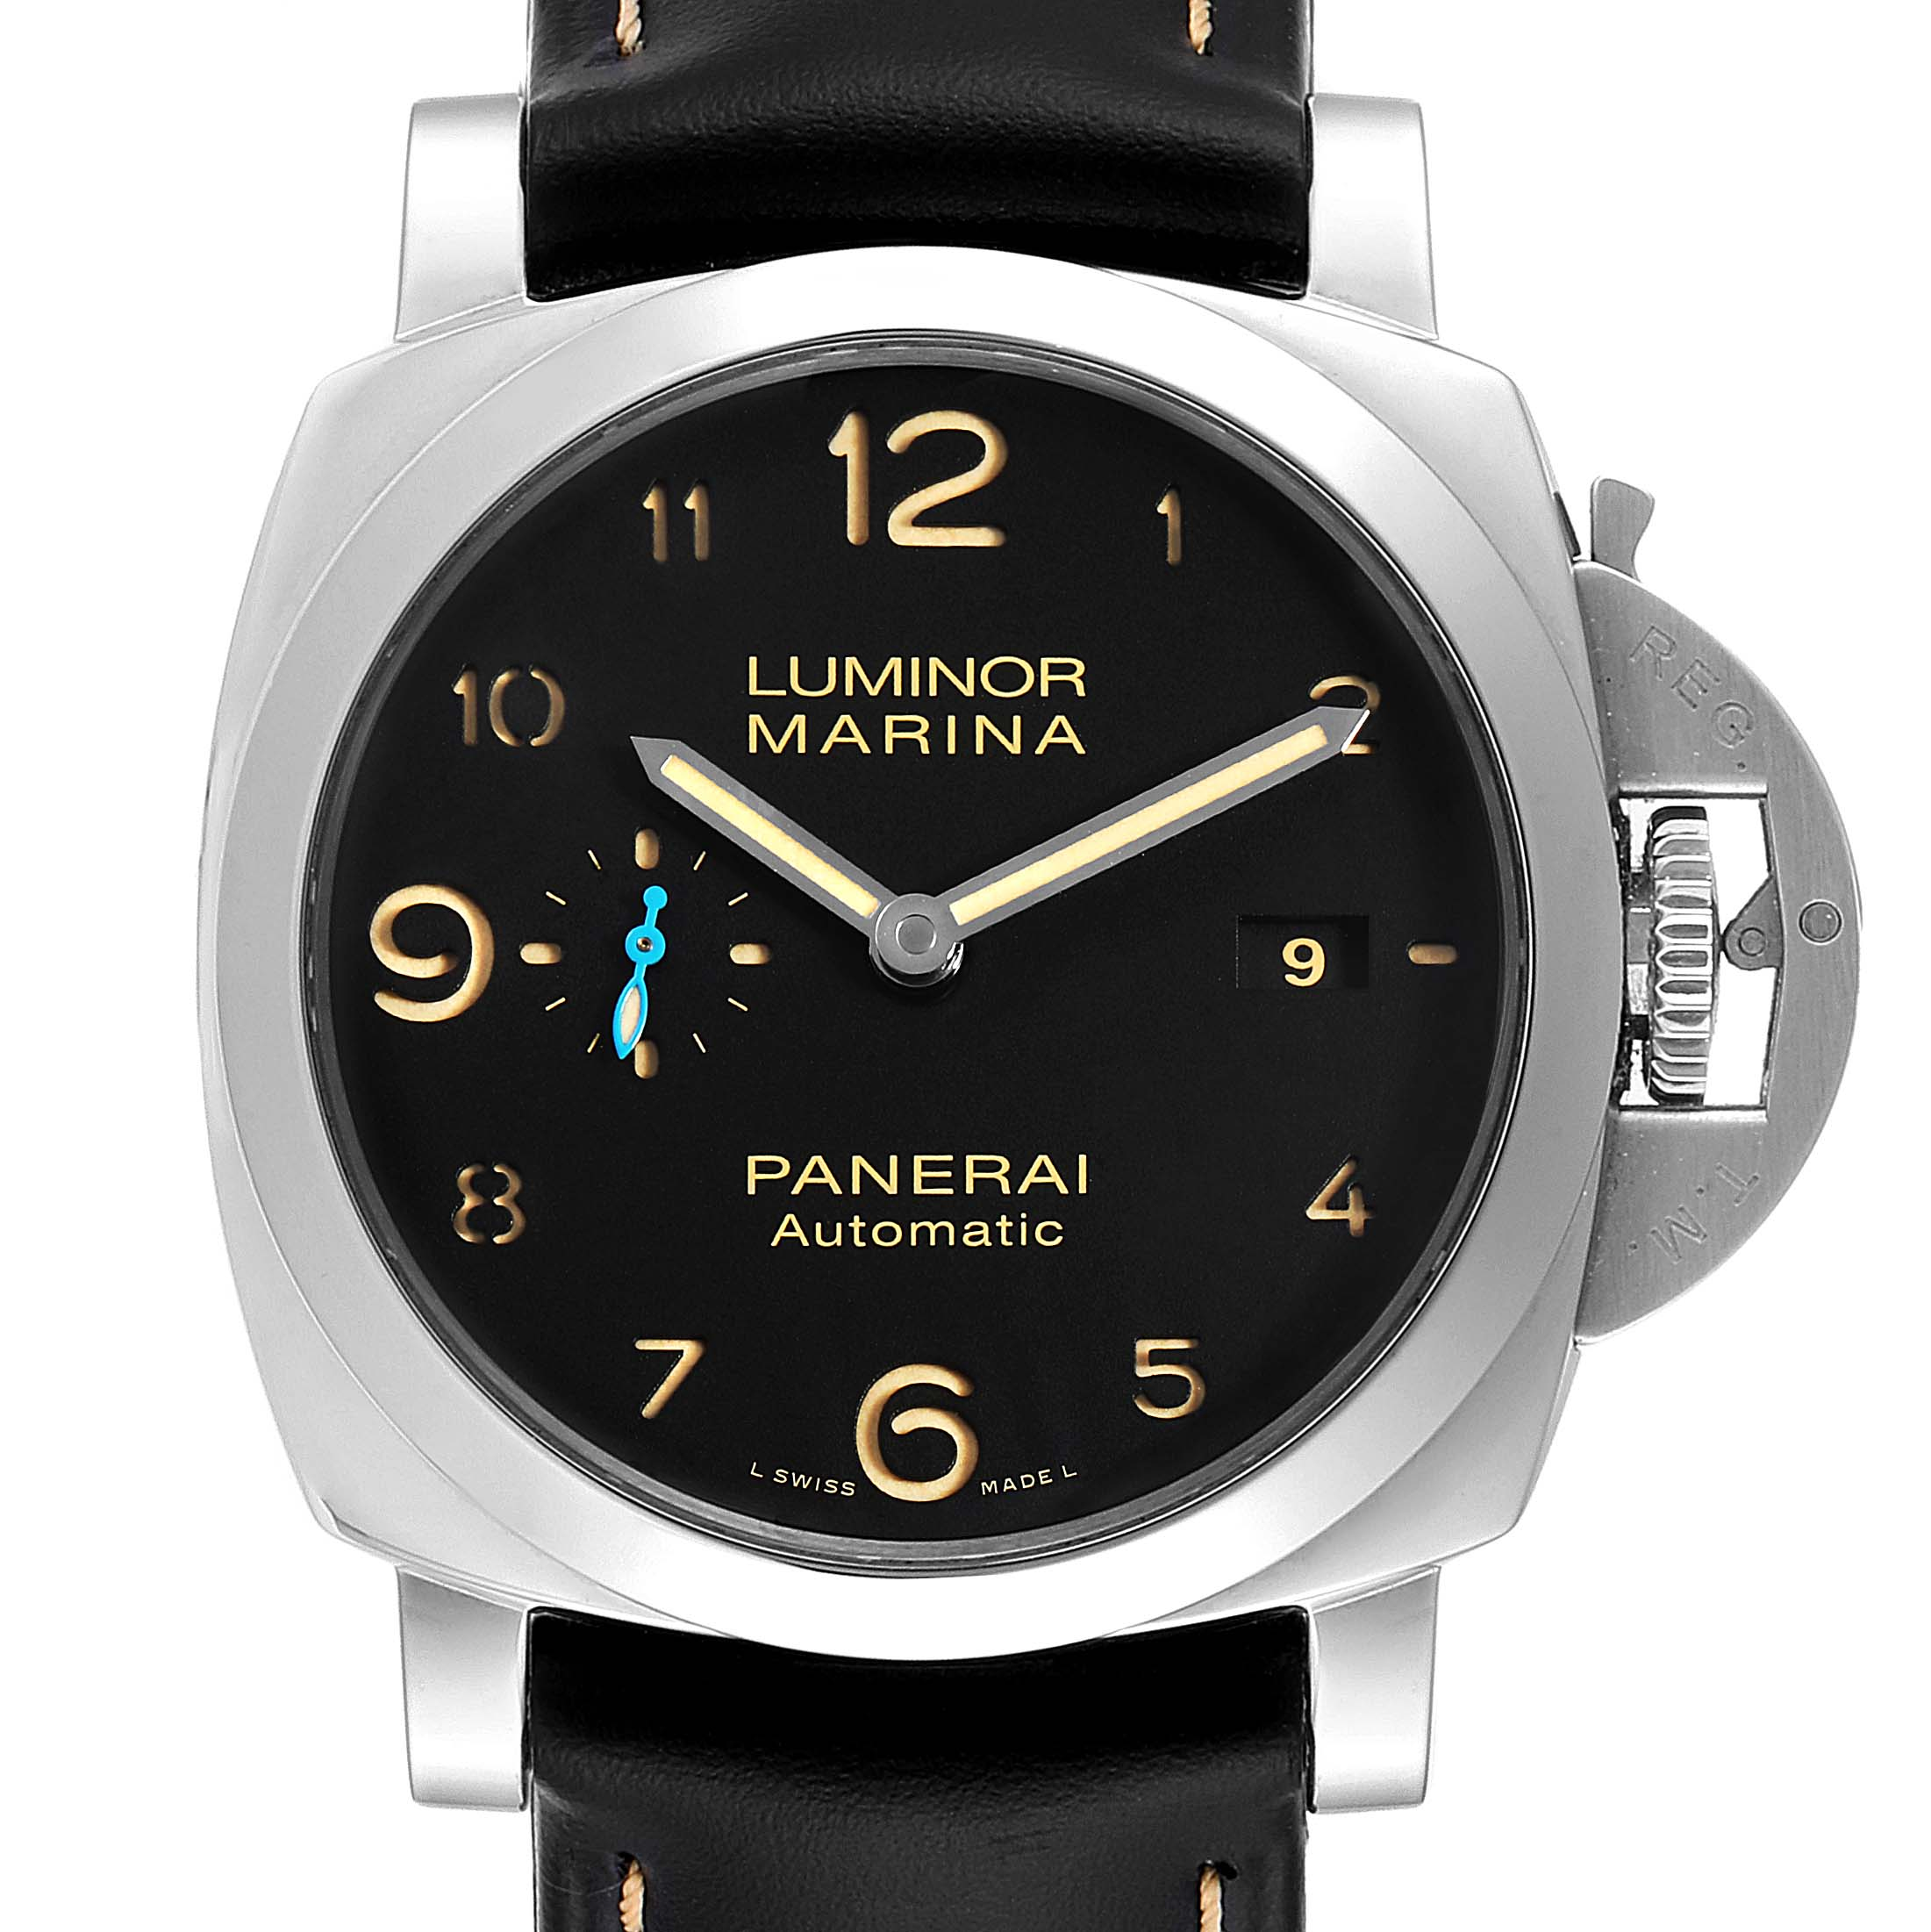 Panerai Luminor 1950 Marina Mens 44mm Watch PAM01359 Box Papers